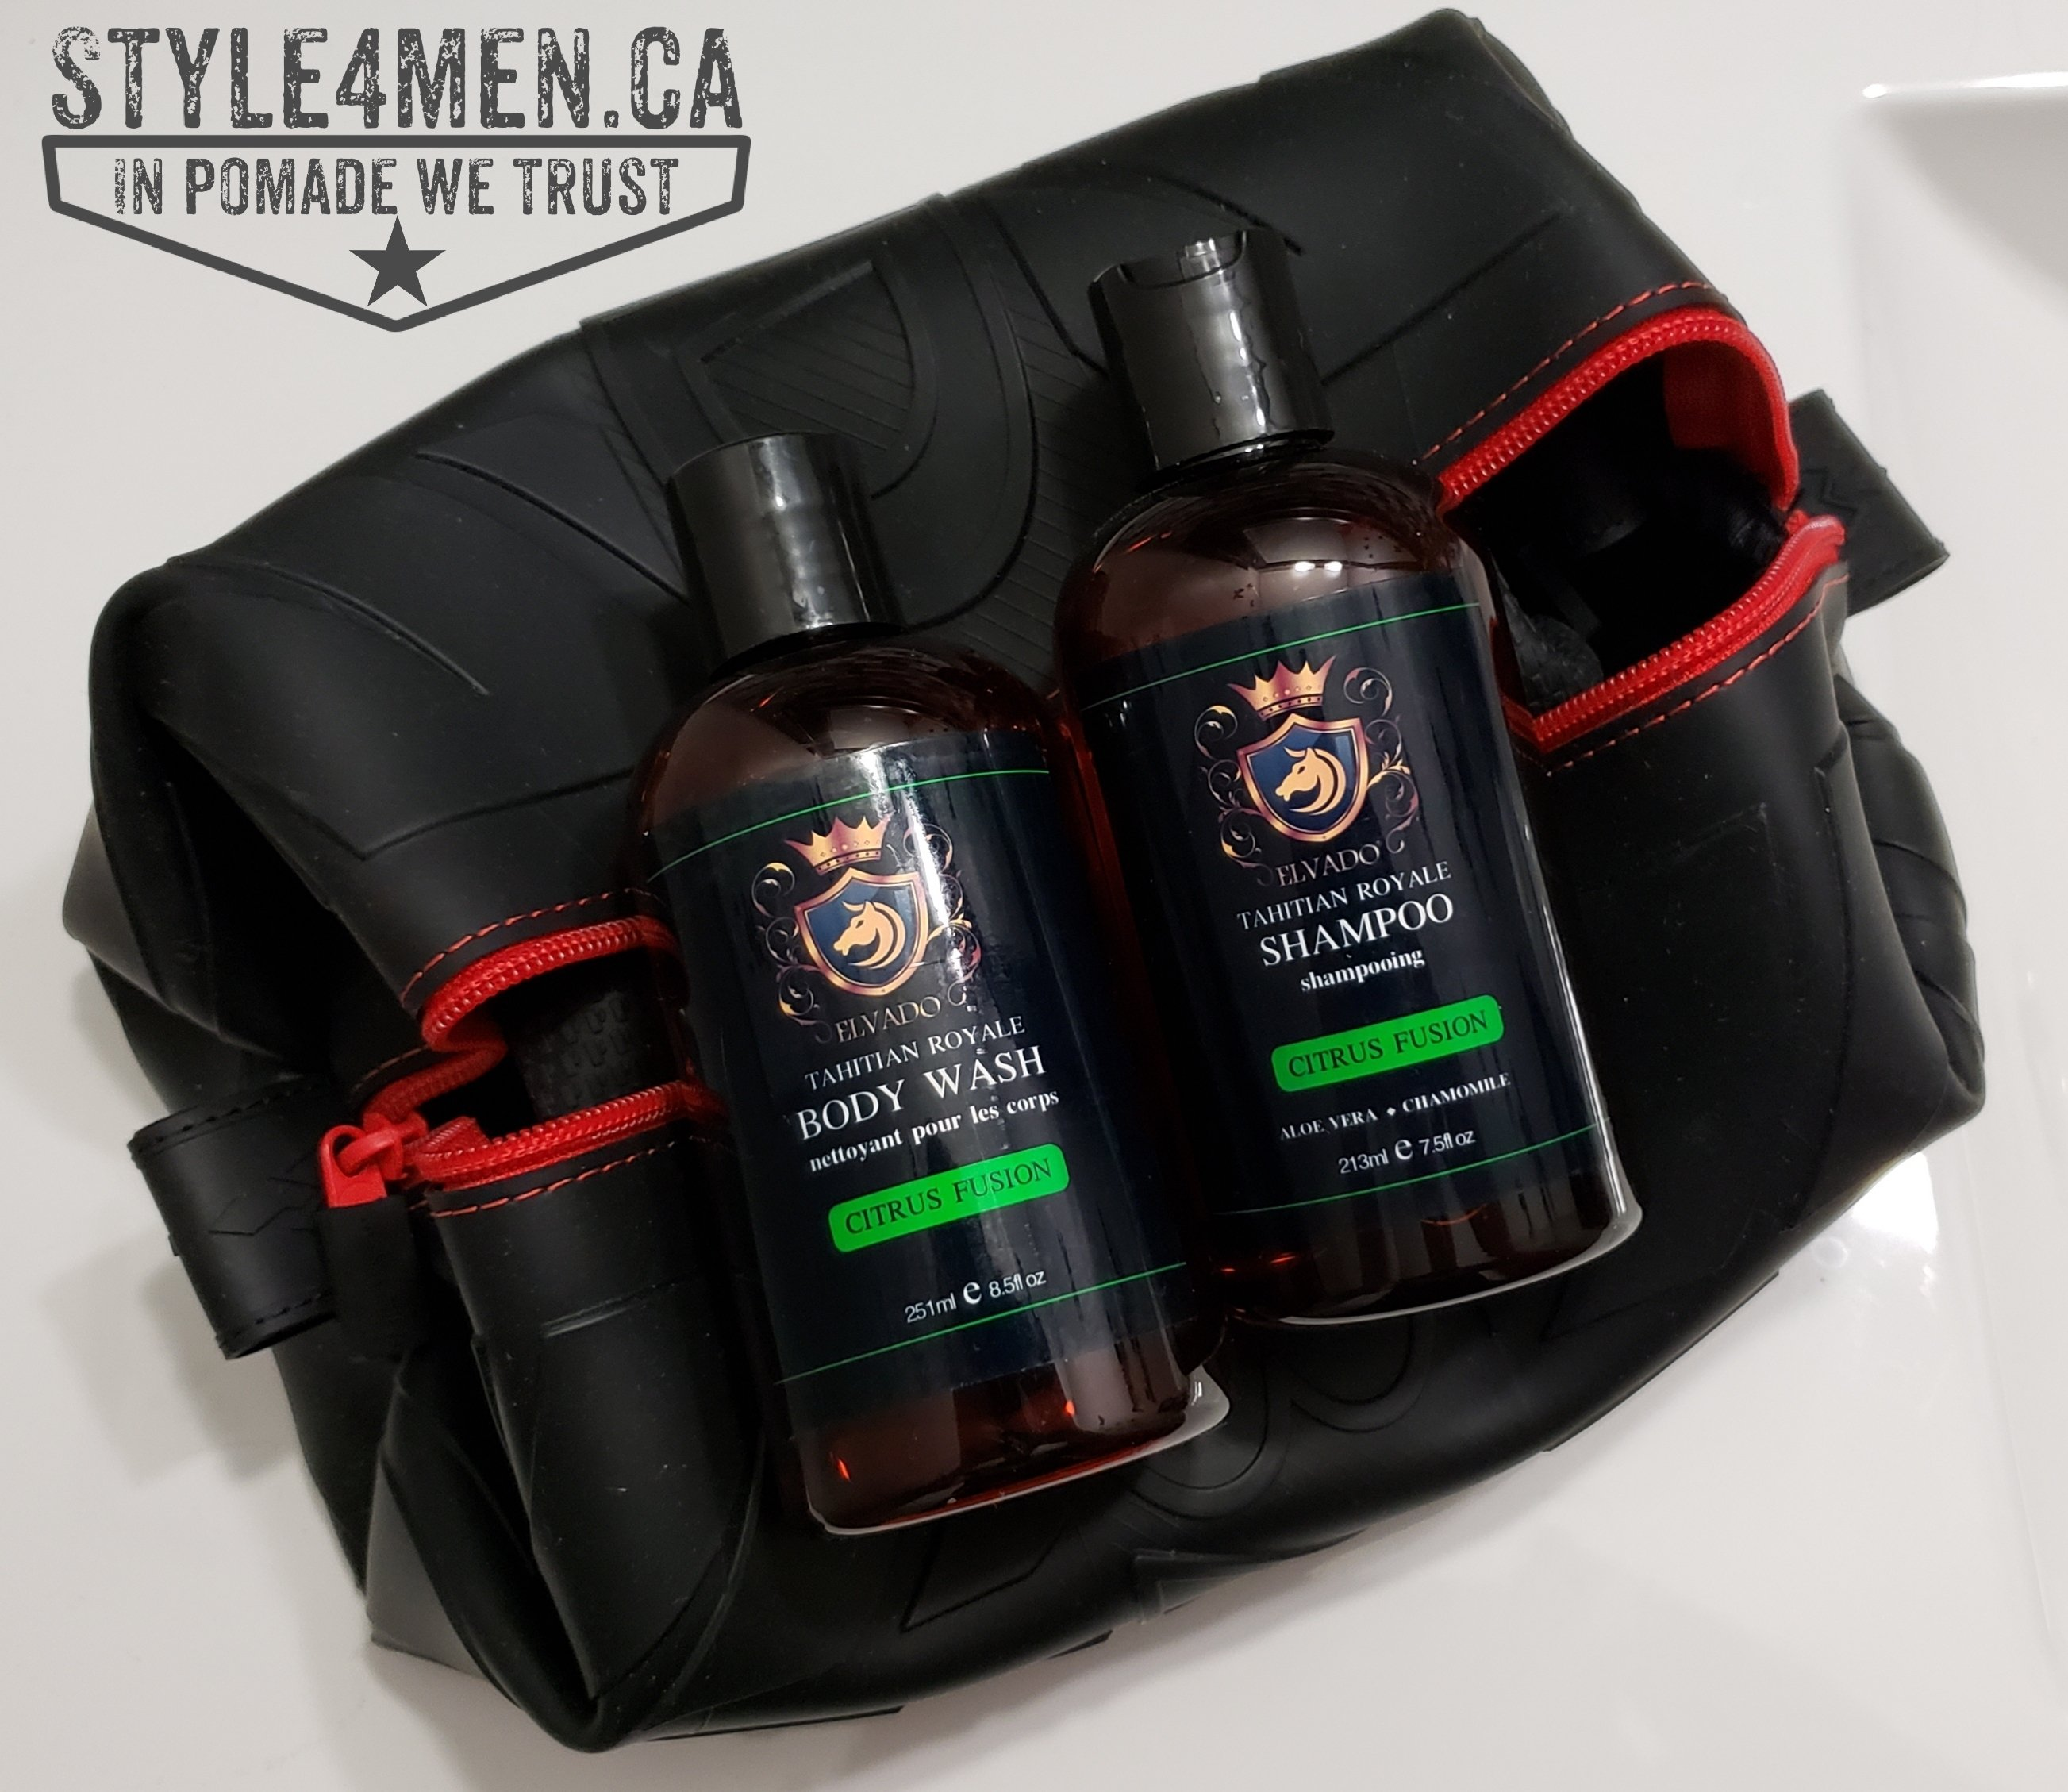 Shampoo and Body Wash by Elvado for Men